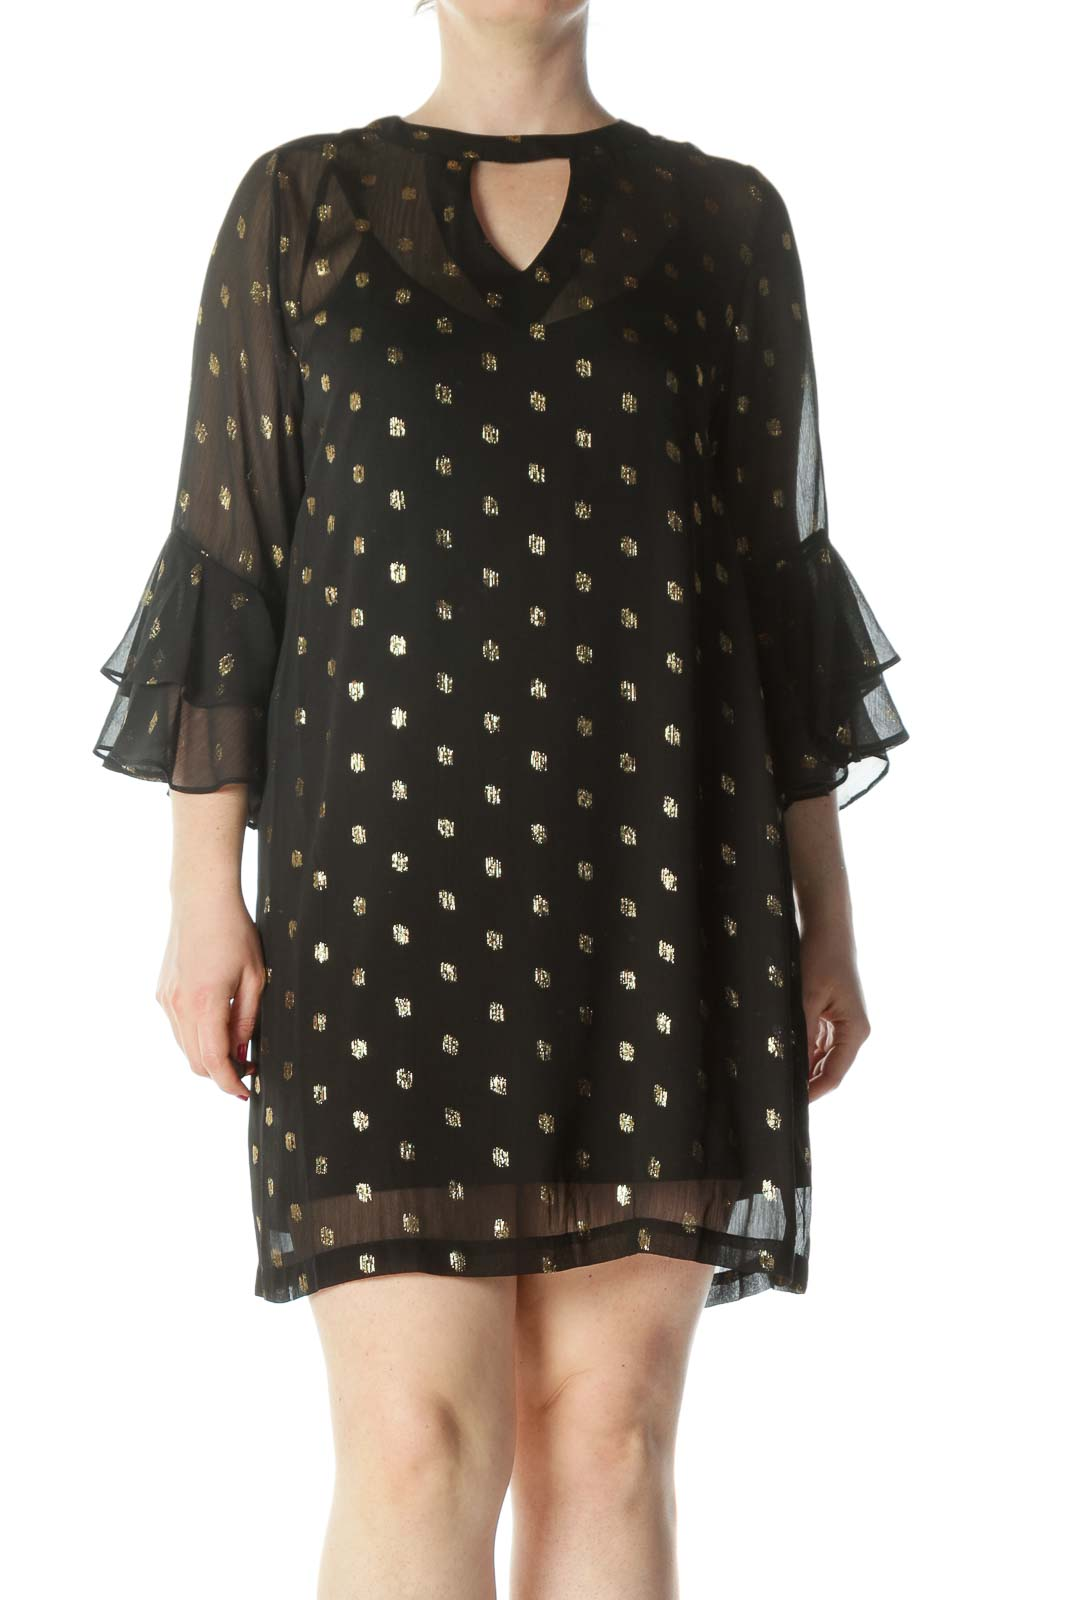 Black/Gold Metallic-Thread-Spots Keyhole See-Through Cocktail Dress Front